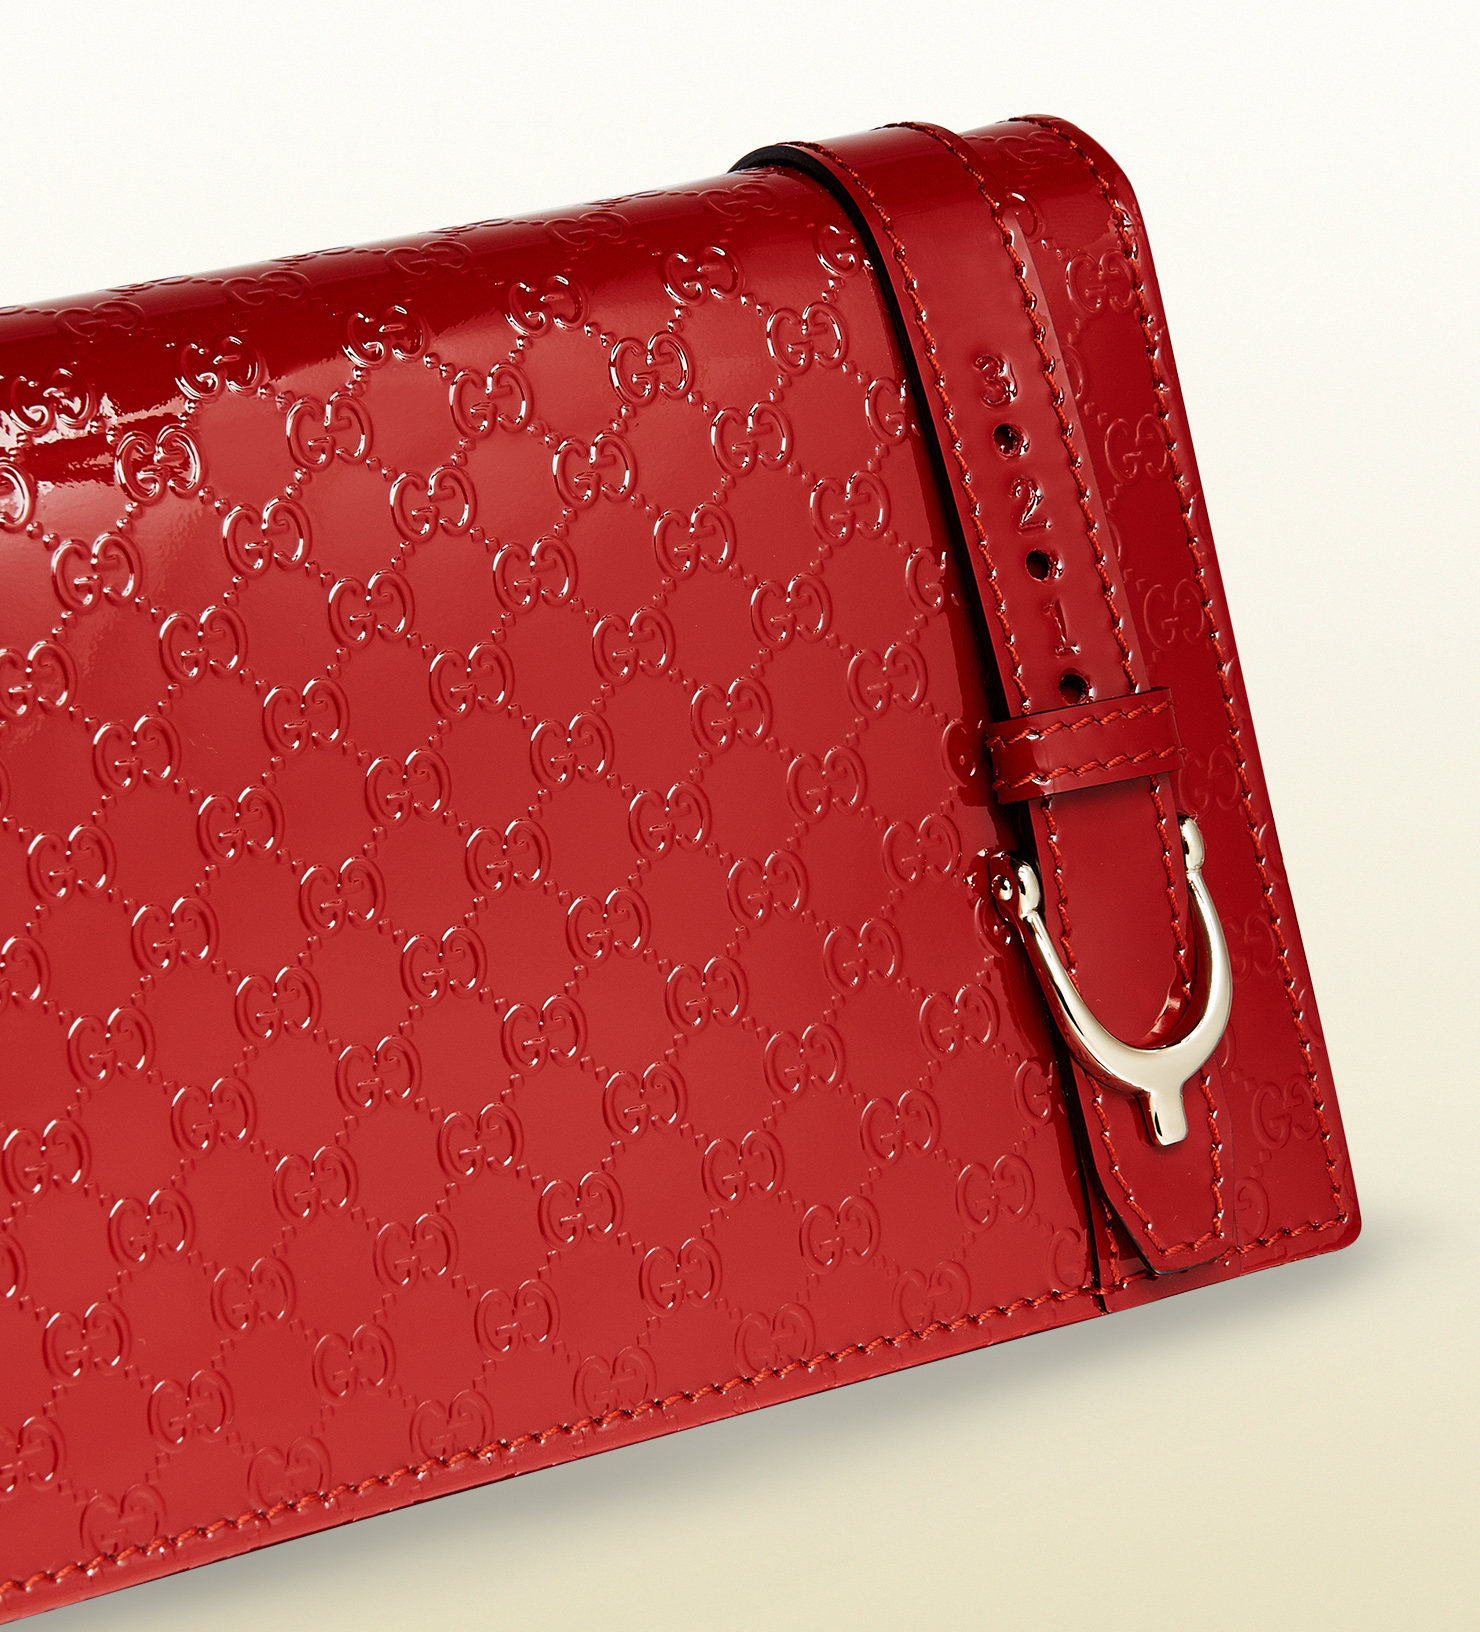 79165300572 Lyst - Gucci Nice Microssima Patent Leather Wallet Handbag in Red